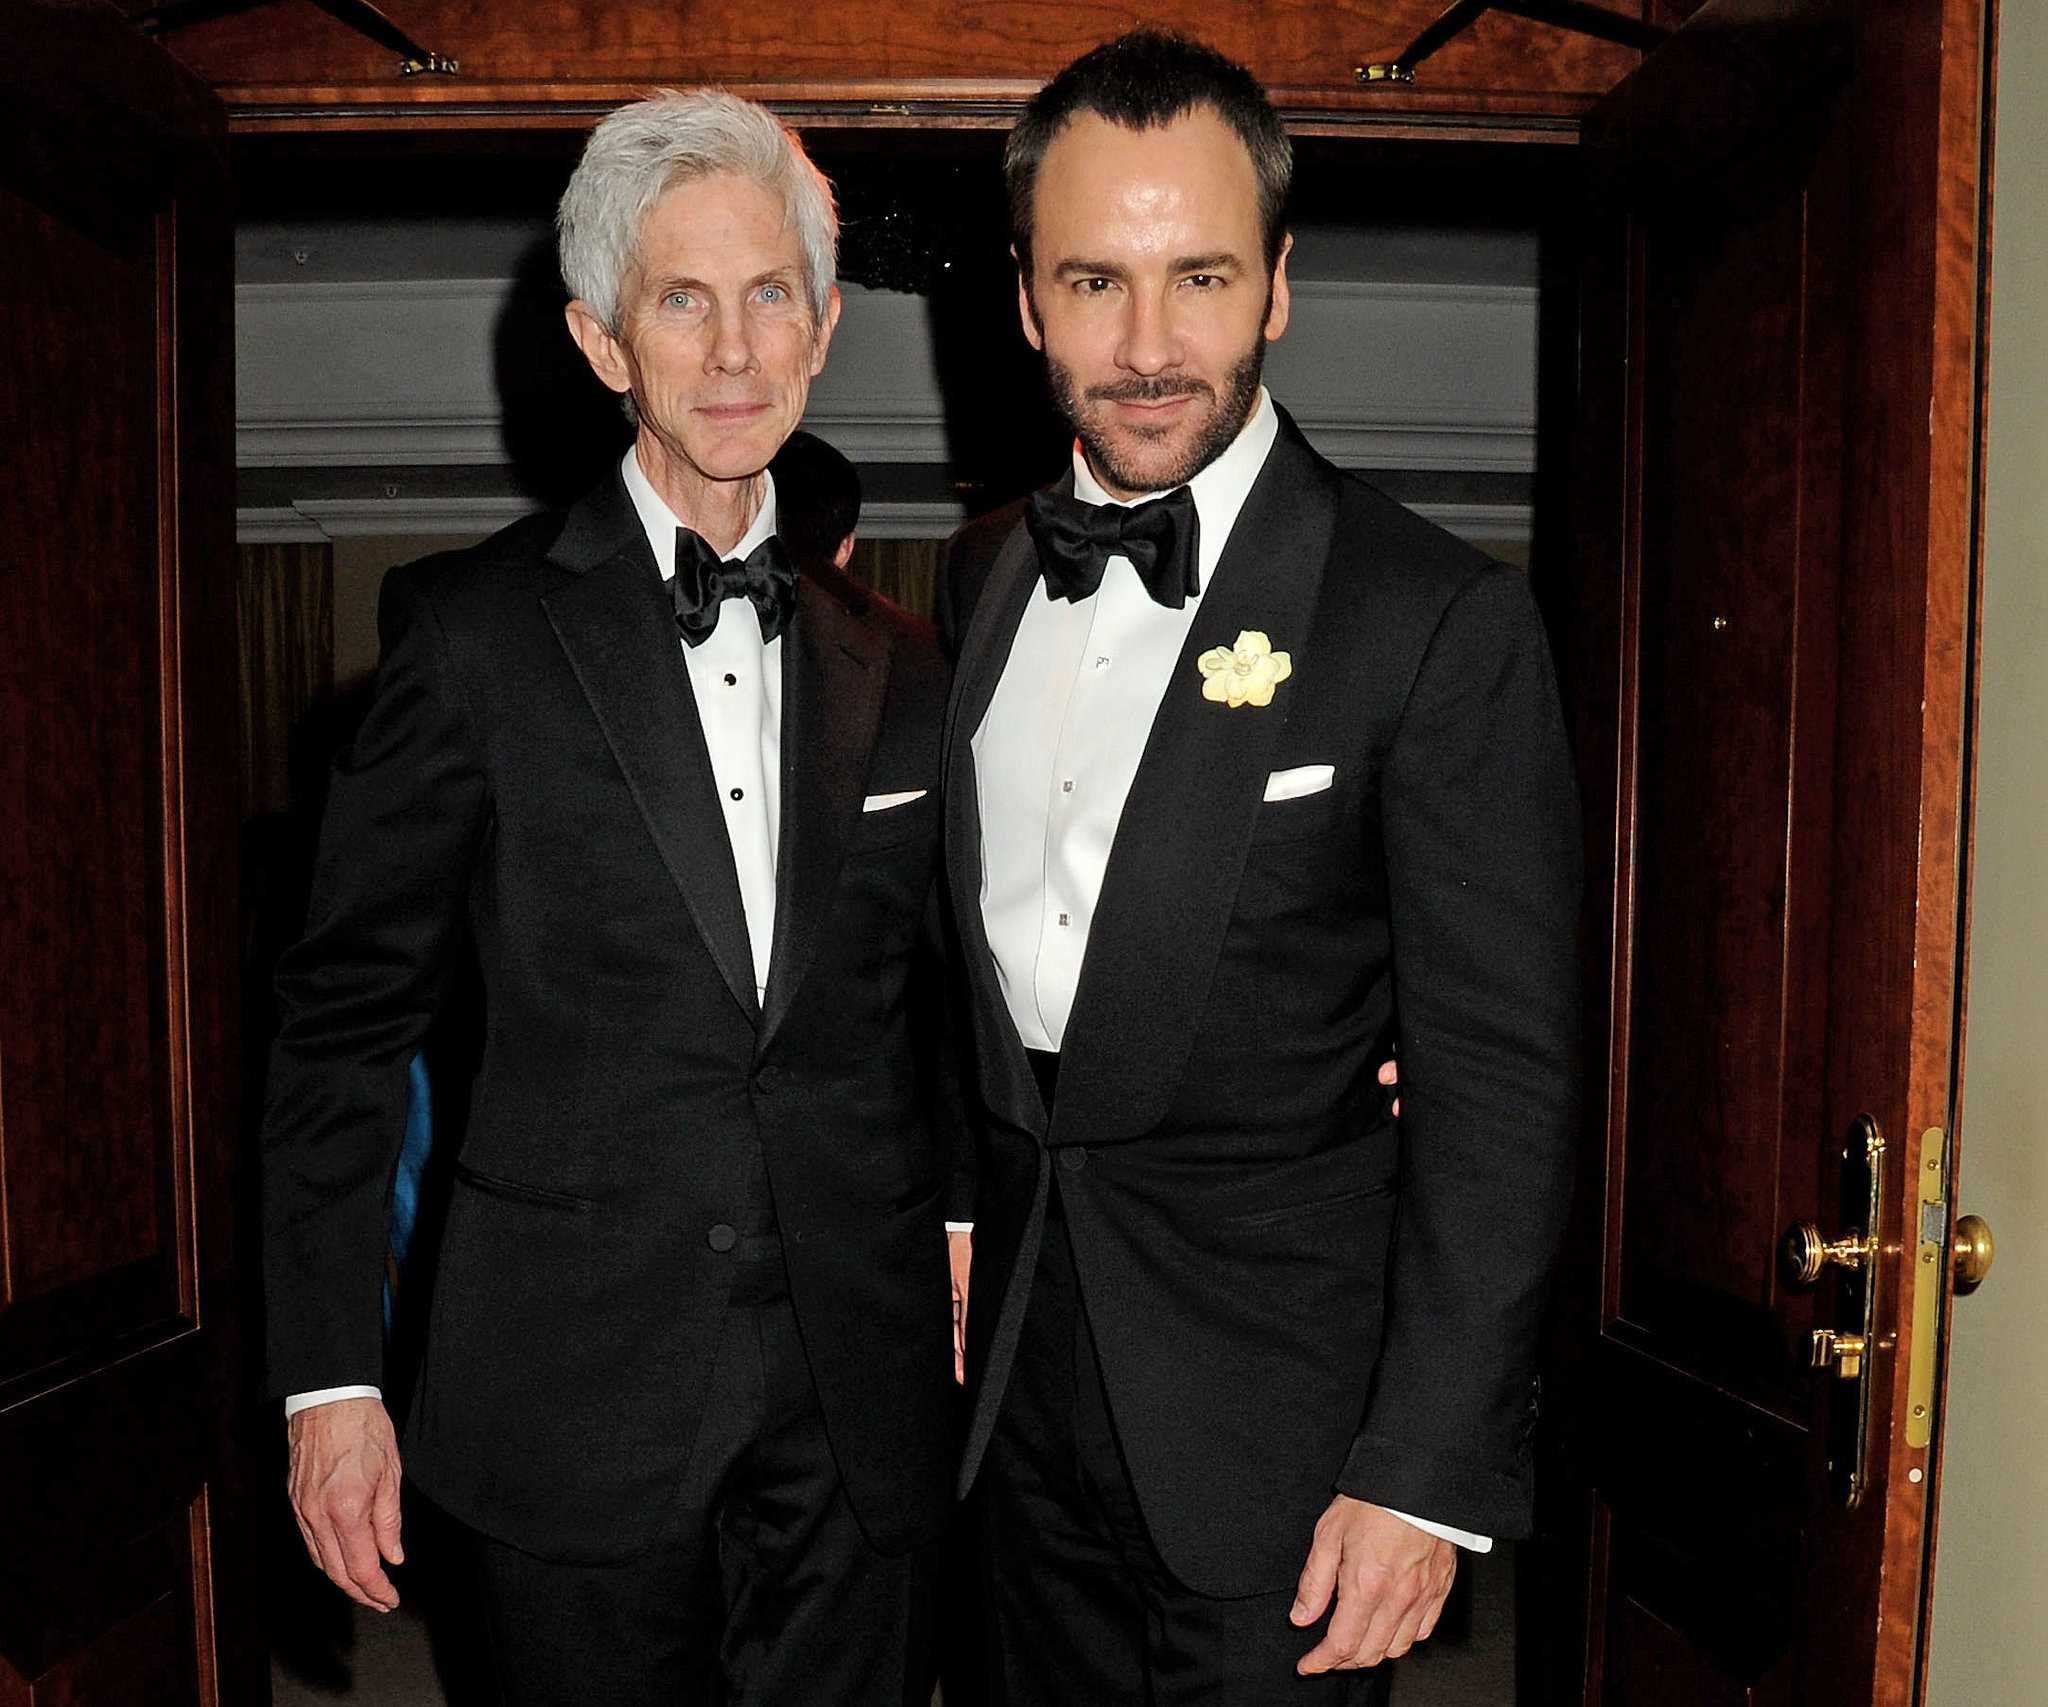 tom ford marries richard buckley popsugar fashion. Cars Review. Best American Auto & Cars Review